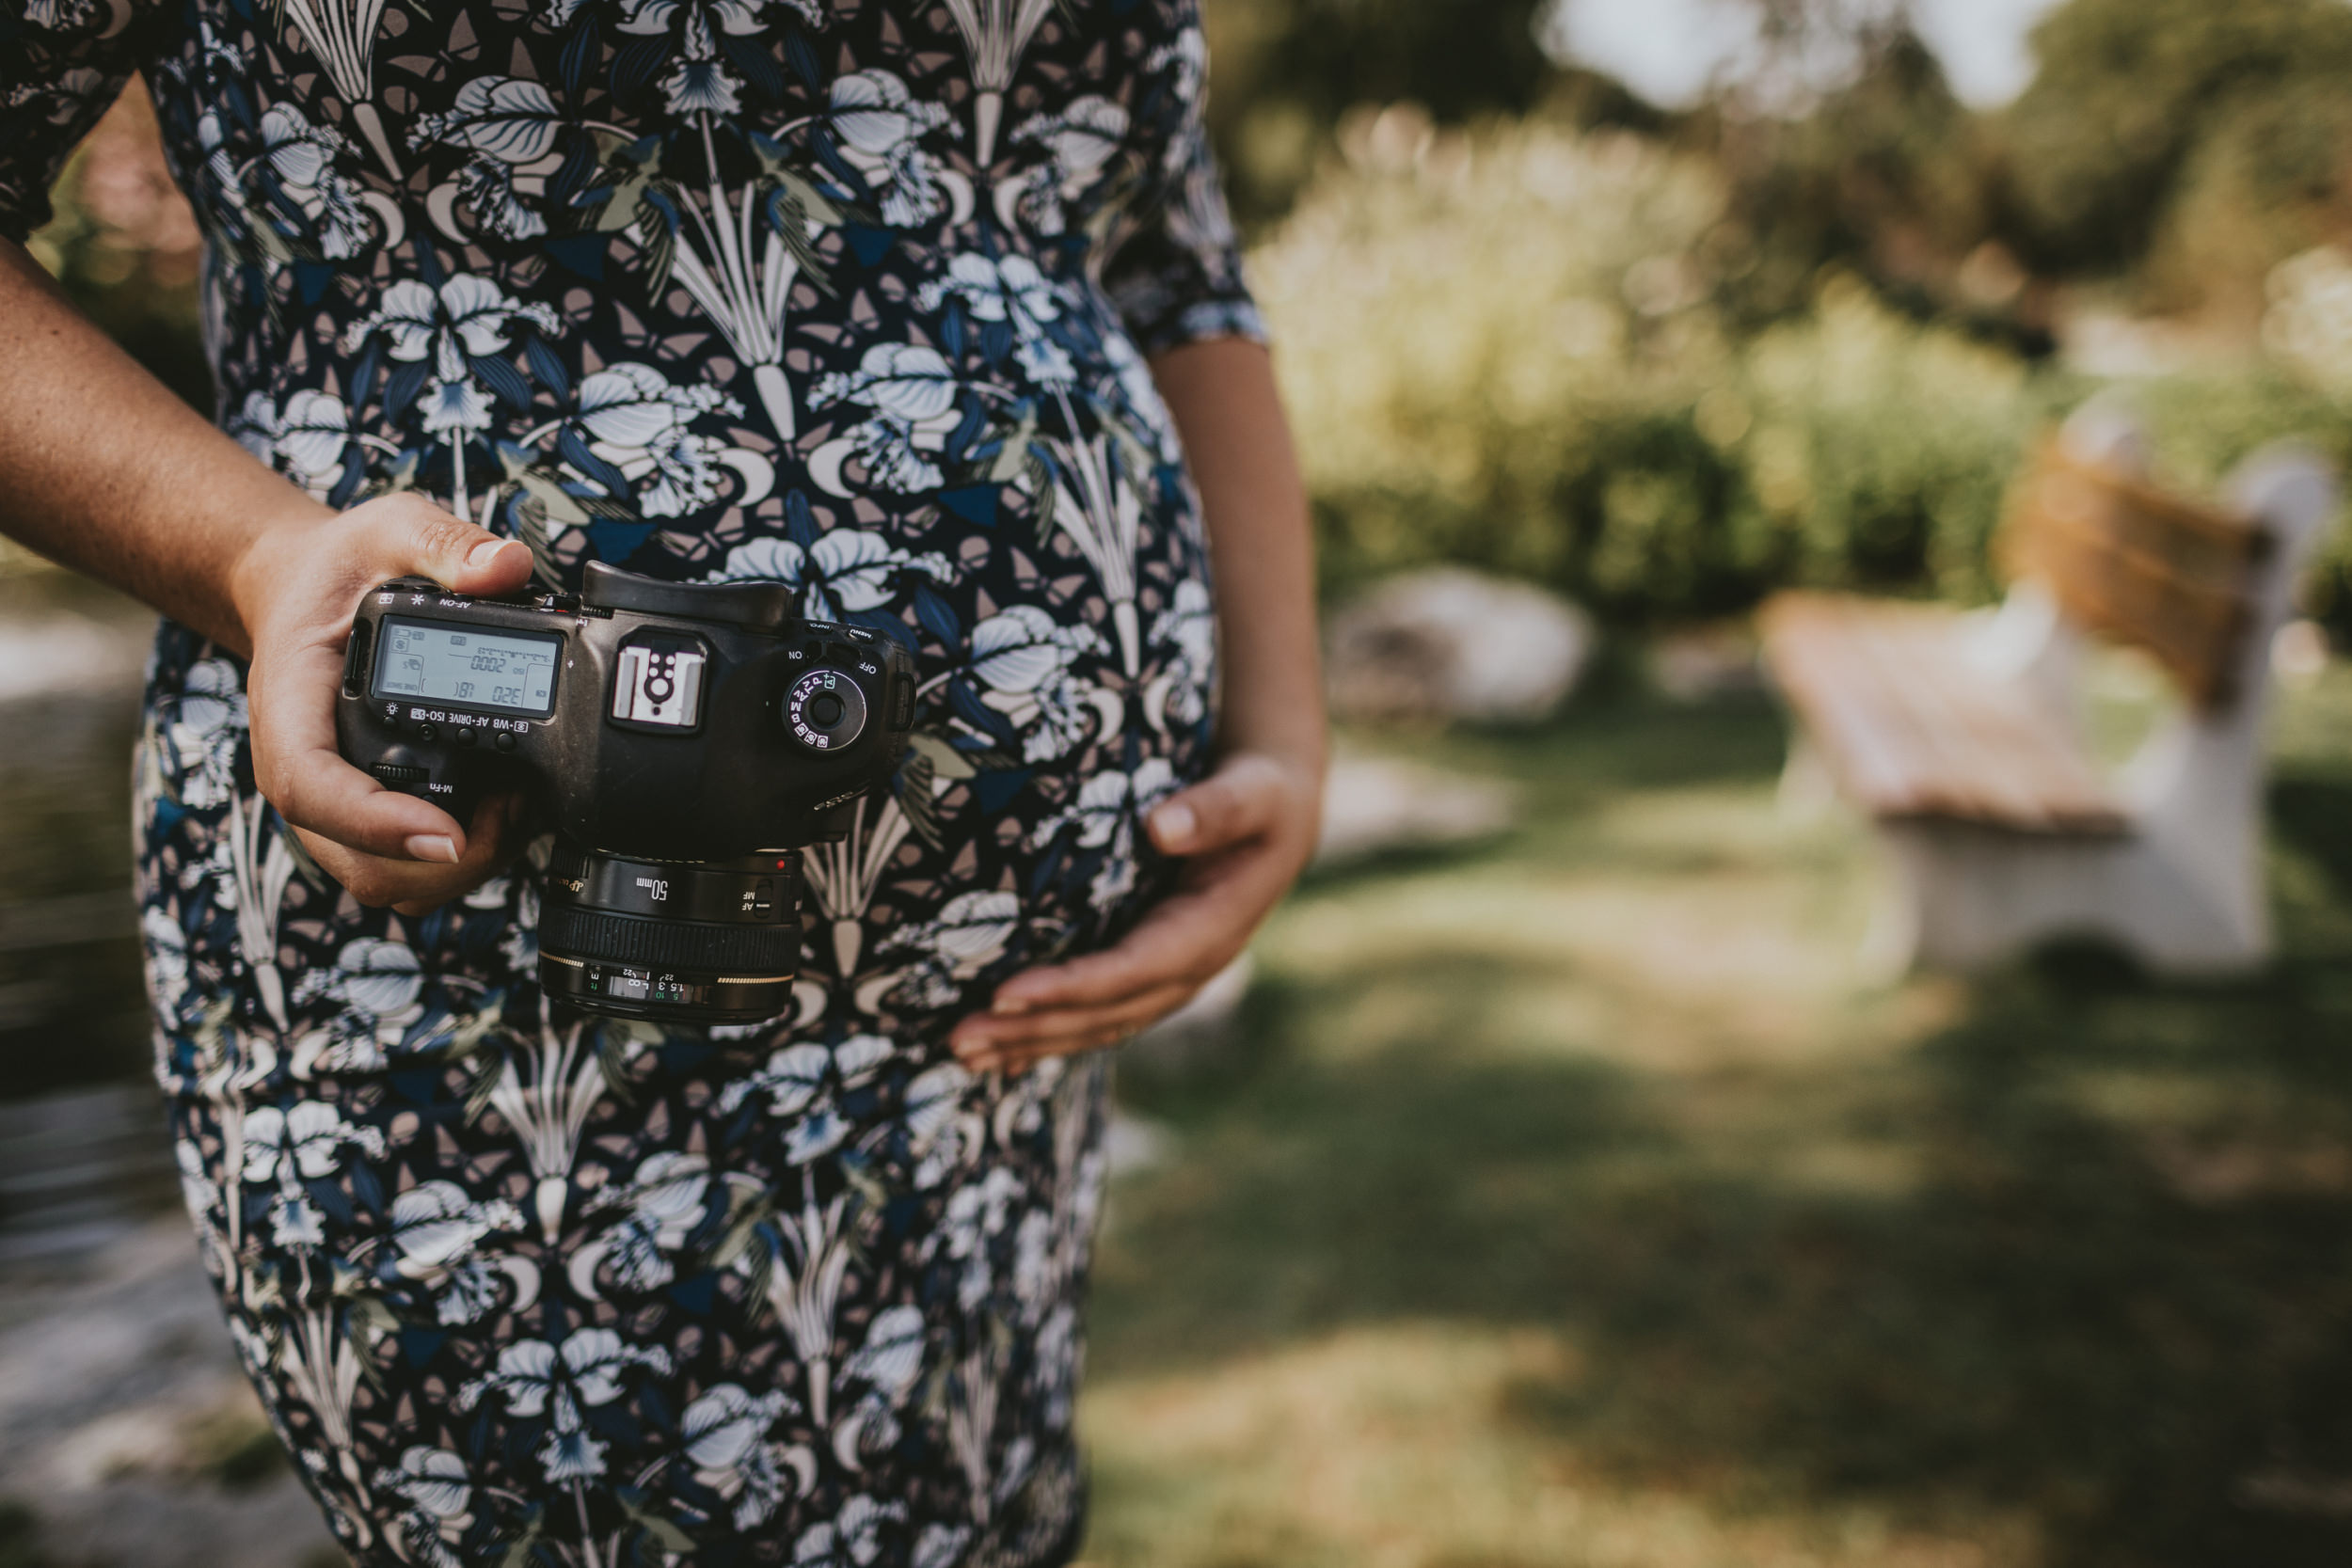 Shooting Weddings in the Third Trimester